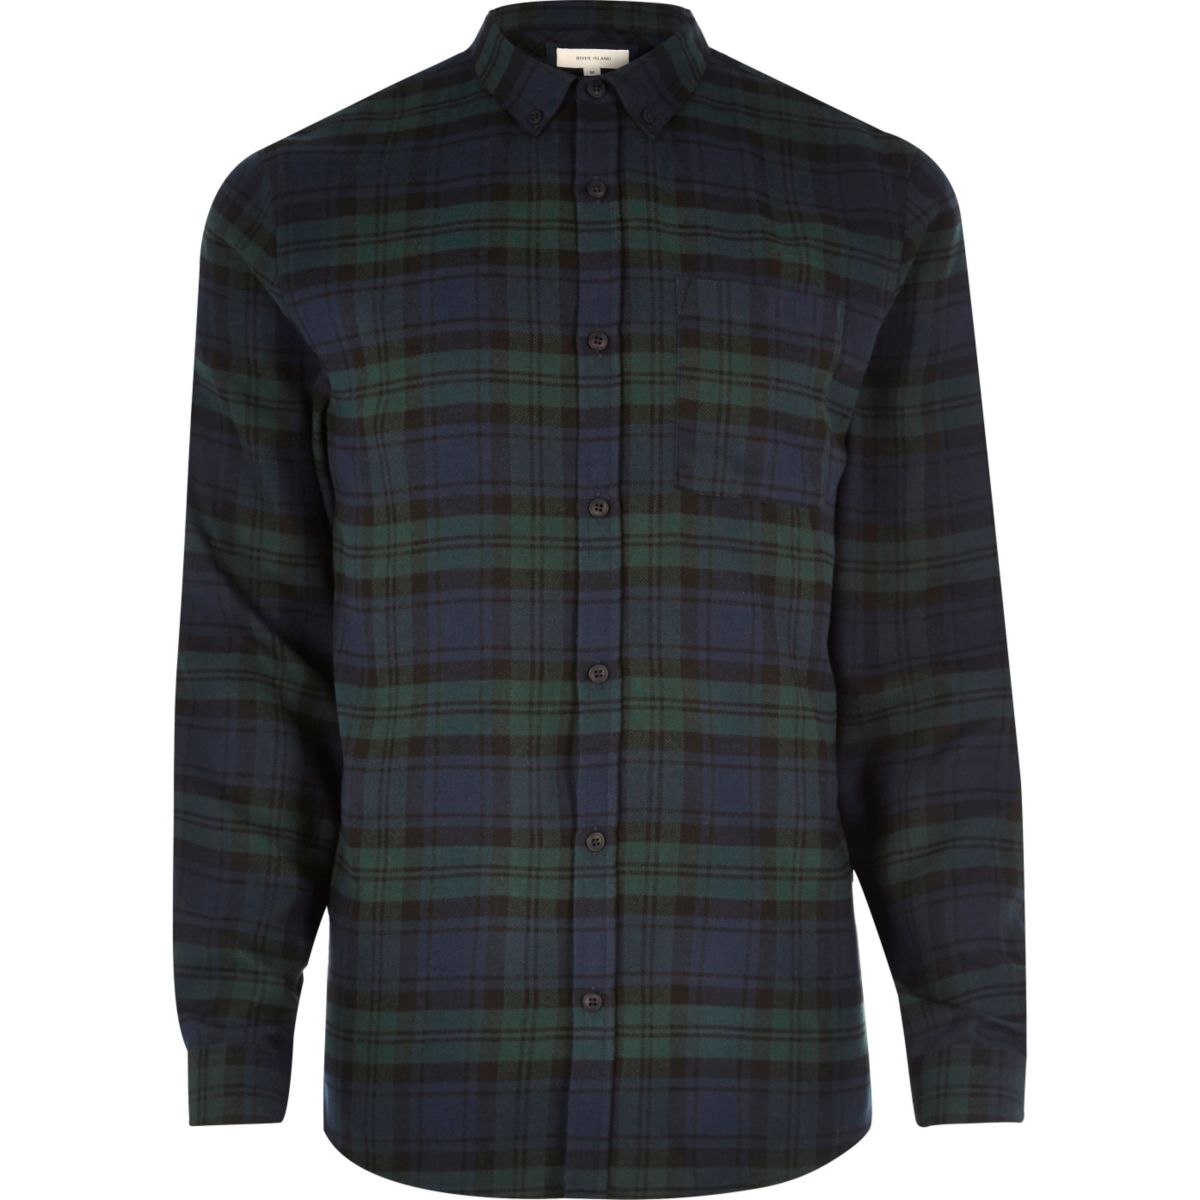 Green casual check flannel shirt